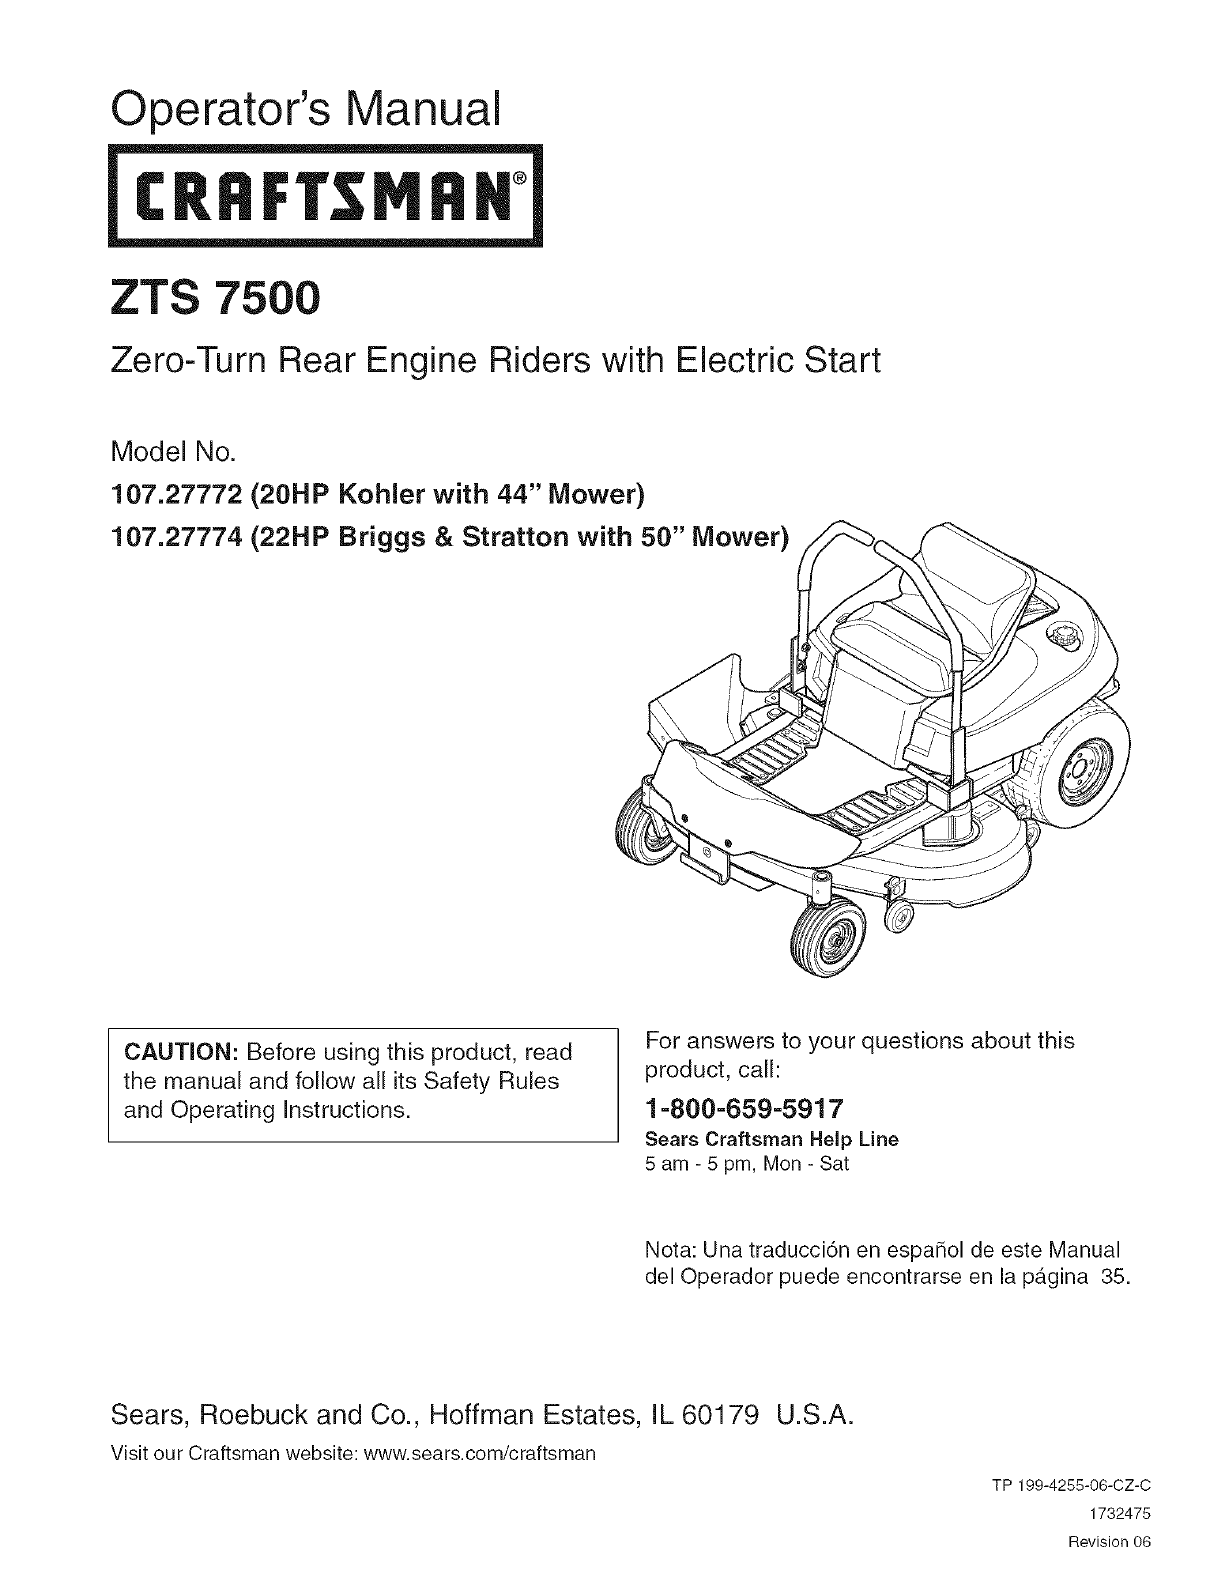 hight resolution of craftsman 107277740 user manual zero turn rear engine rider manuals and guides l0803097